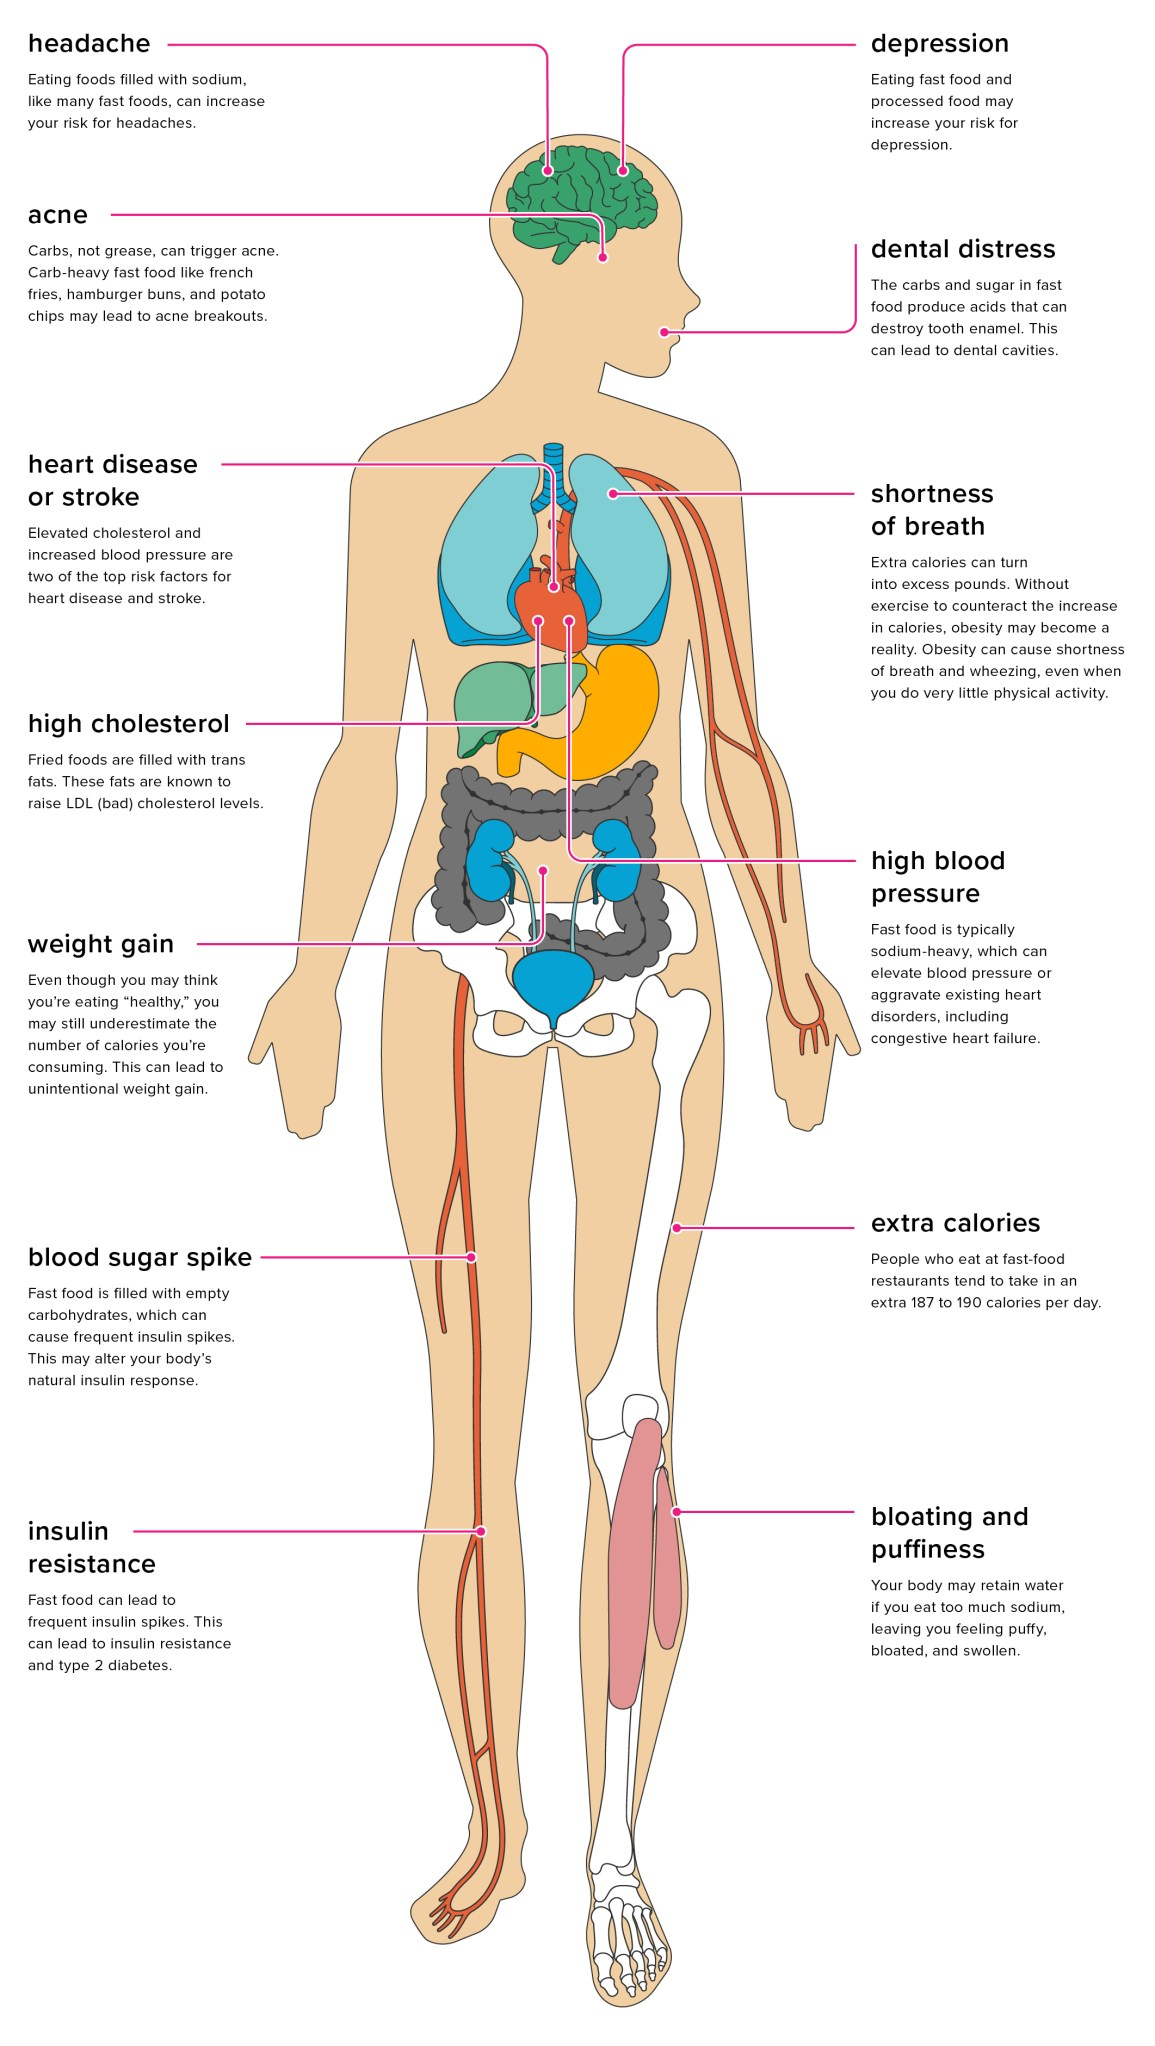 13 Effects of Fast Food on the Body